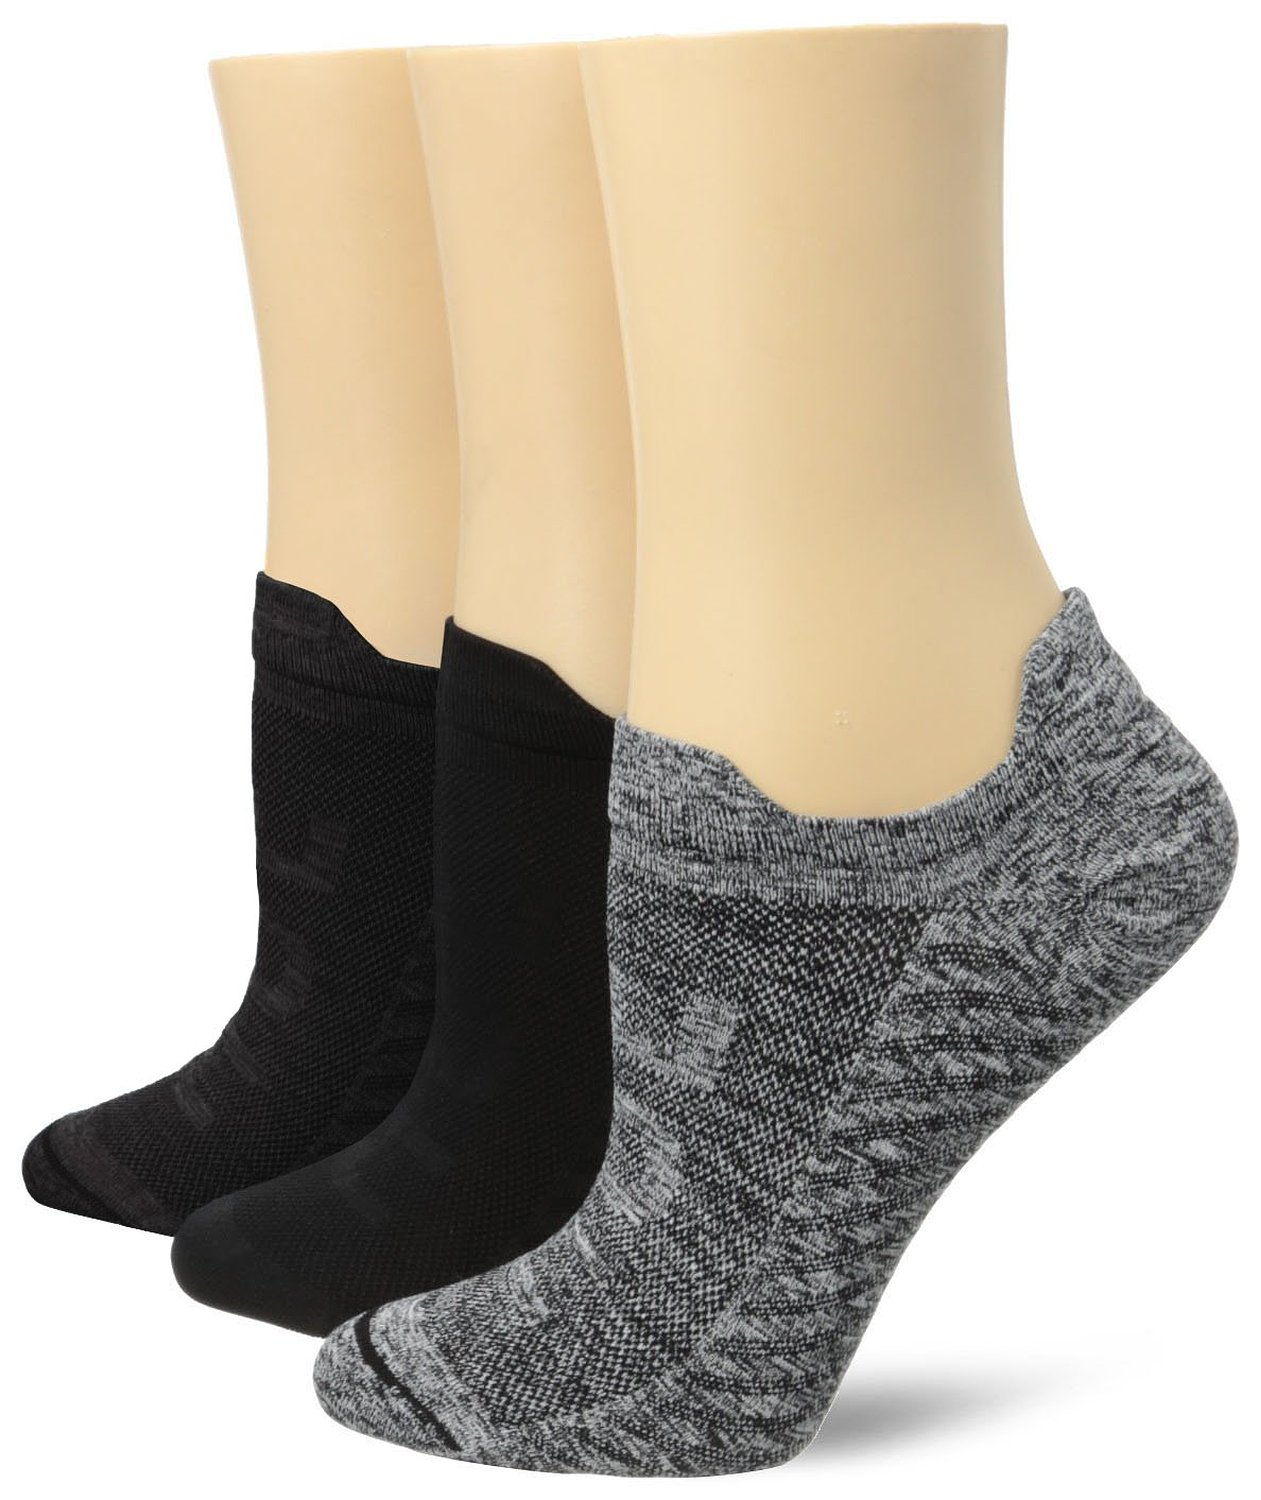 Hue Women's Air Sleek Front and Back Tab 3 Pack Athletic Socks, Black, One Size at Amazon Women's Clothing store